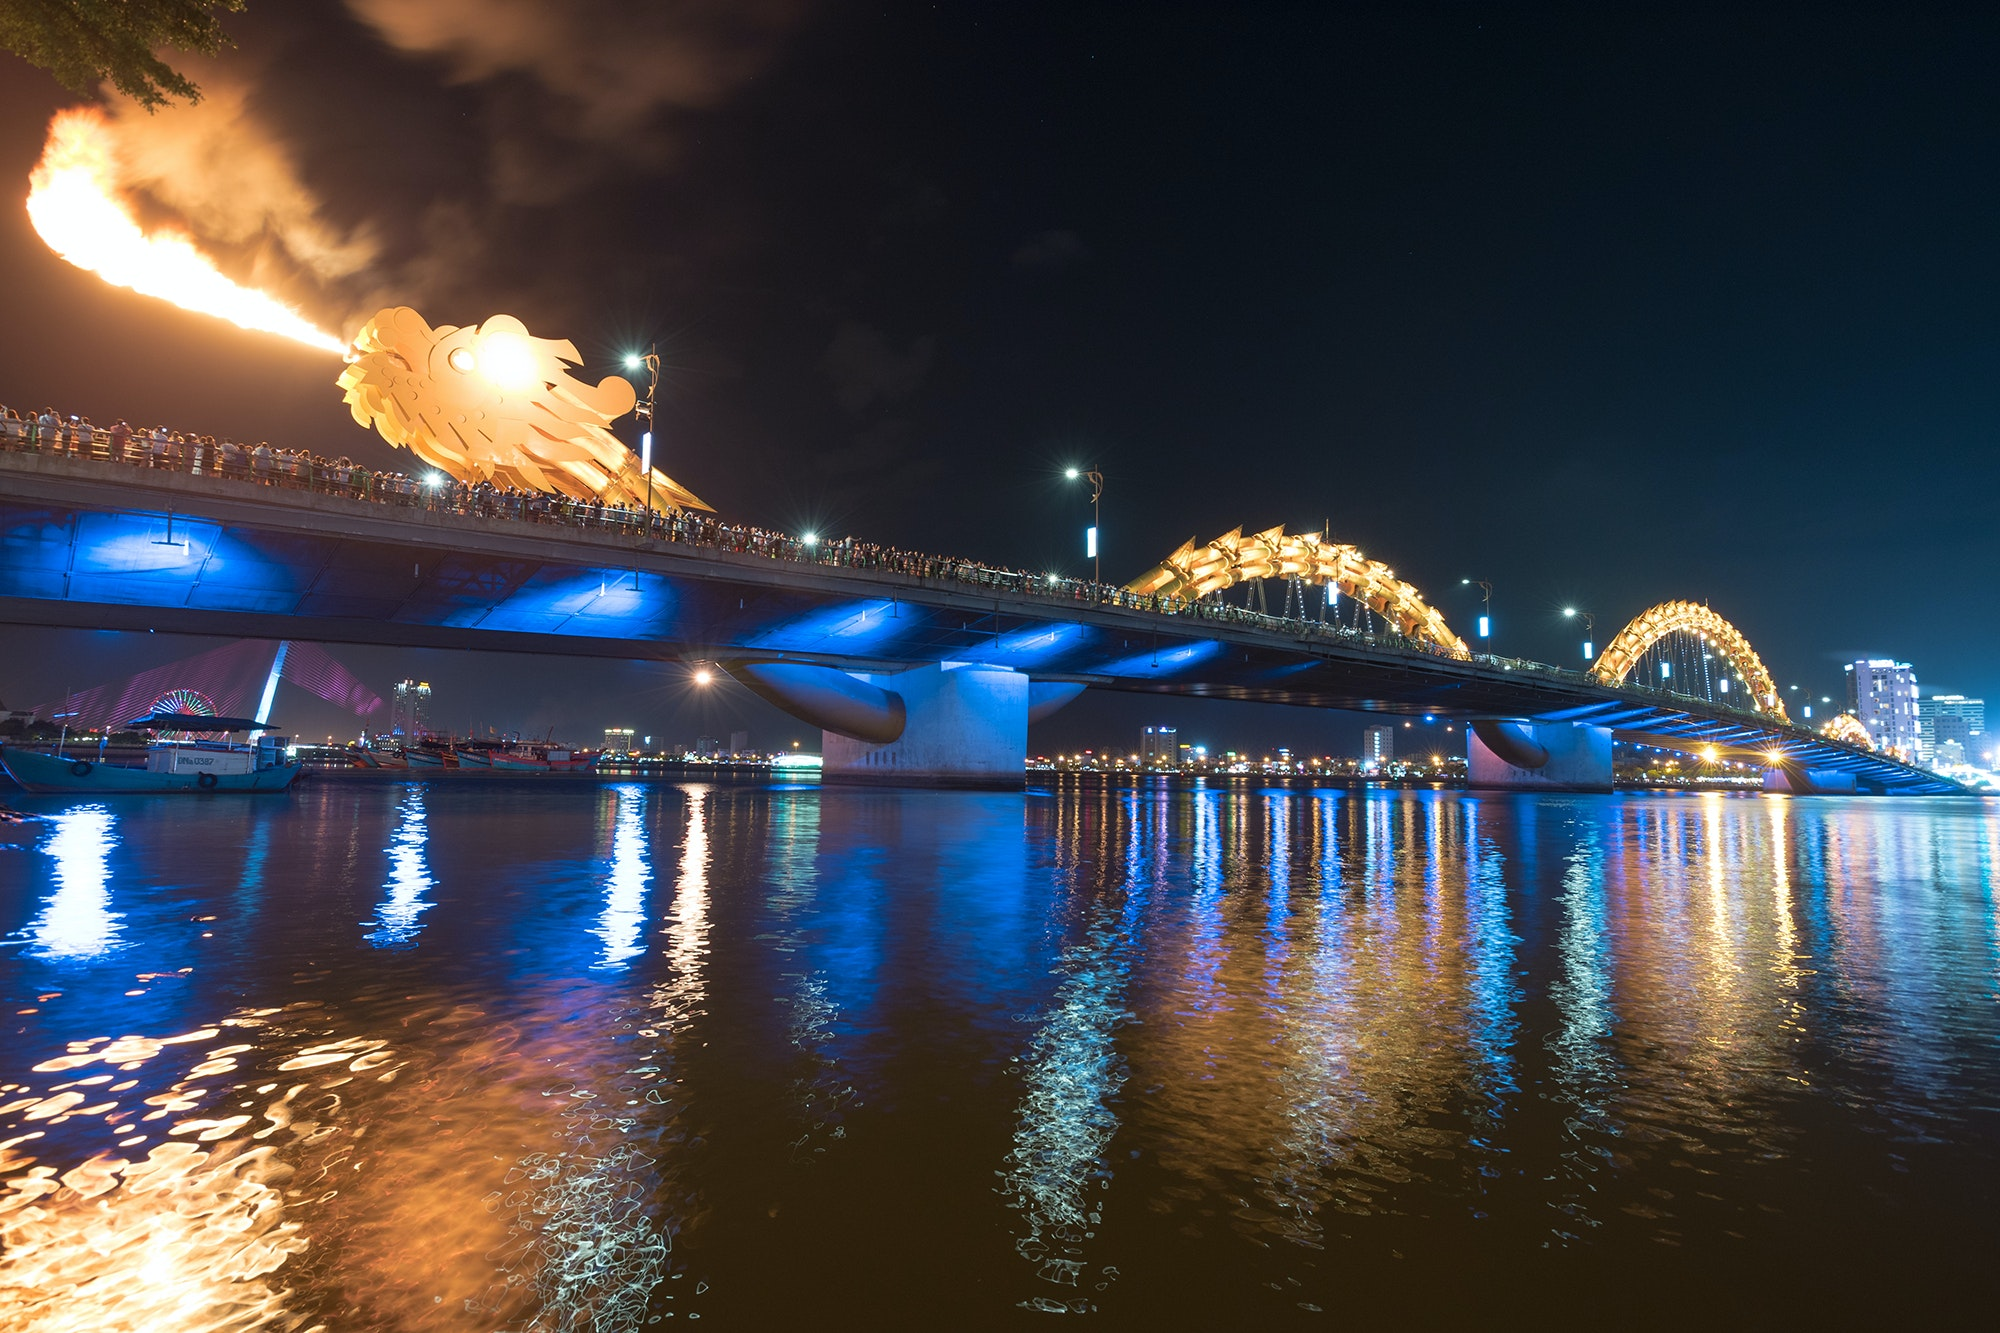 The Dragon Bridge in nearby Da Nang